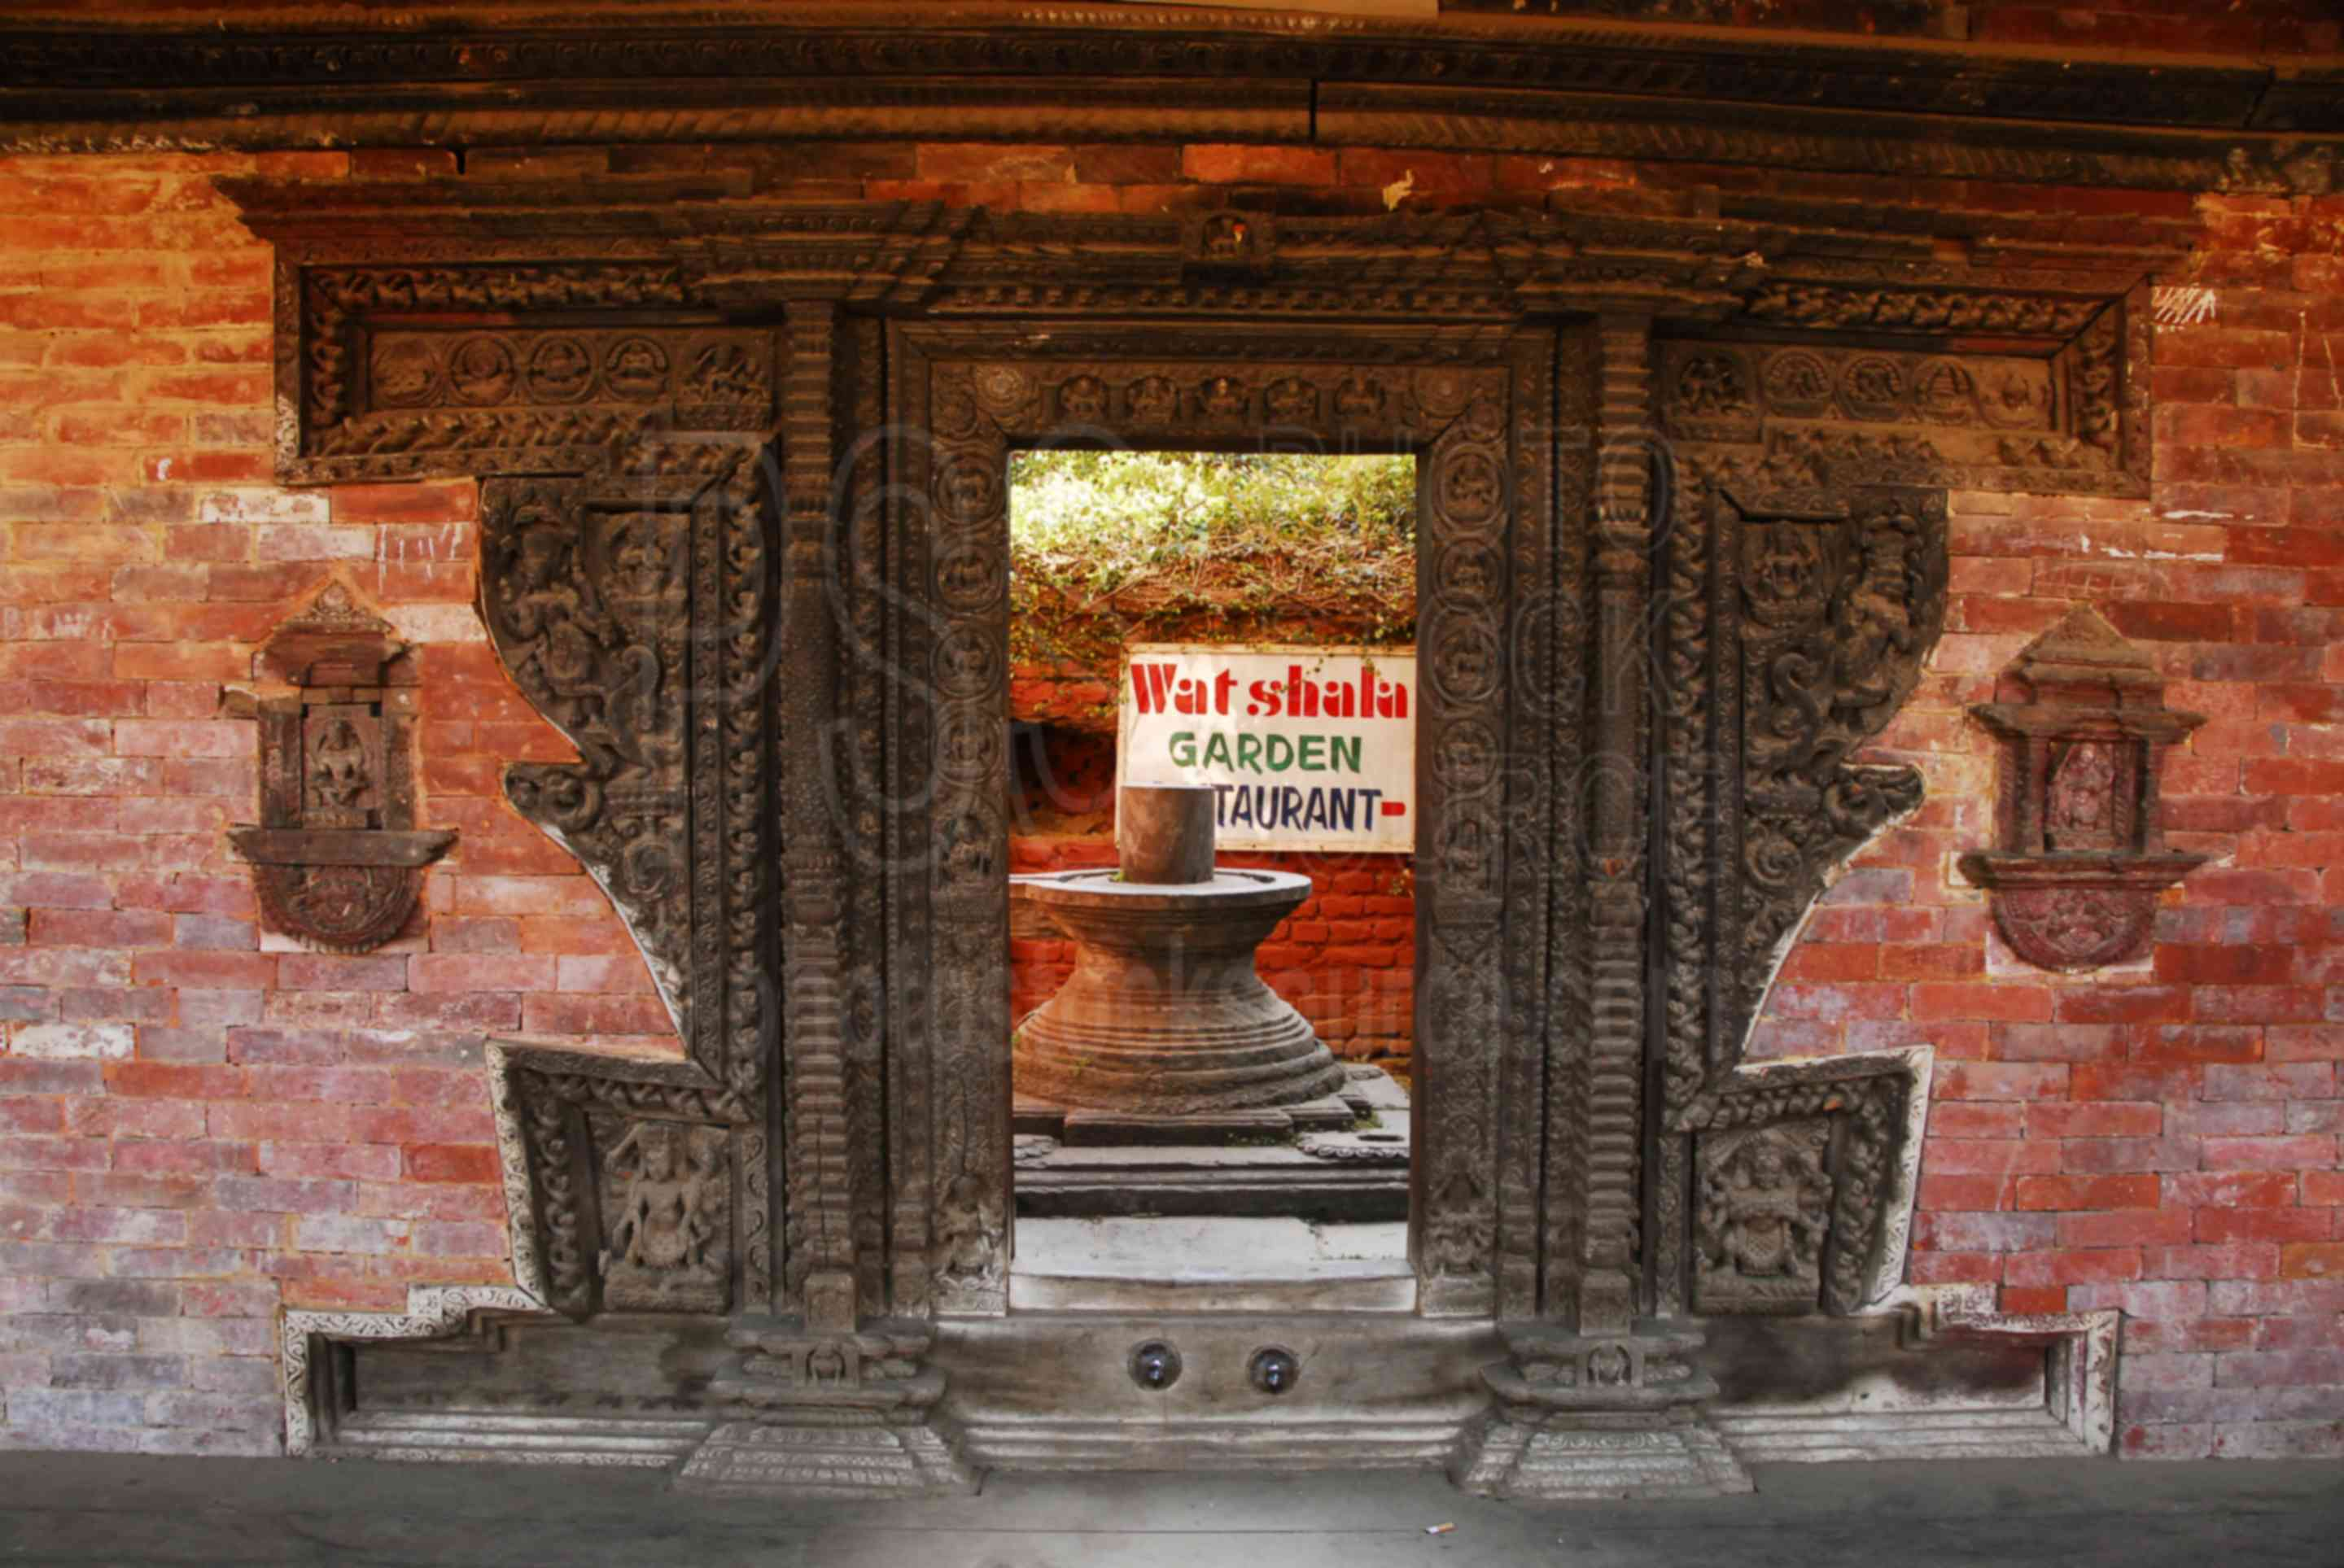 Tadhunchen Bahal Entrance,temple,door,carved,ornate,durbar square,temples